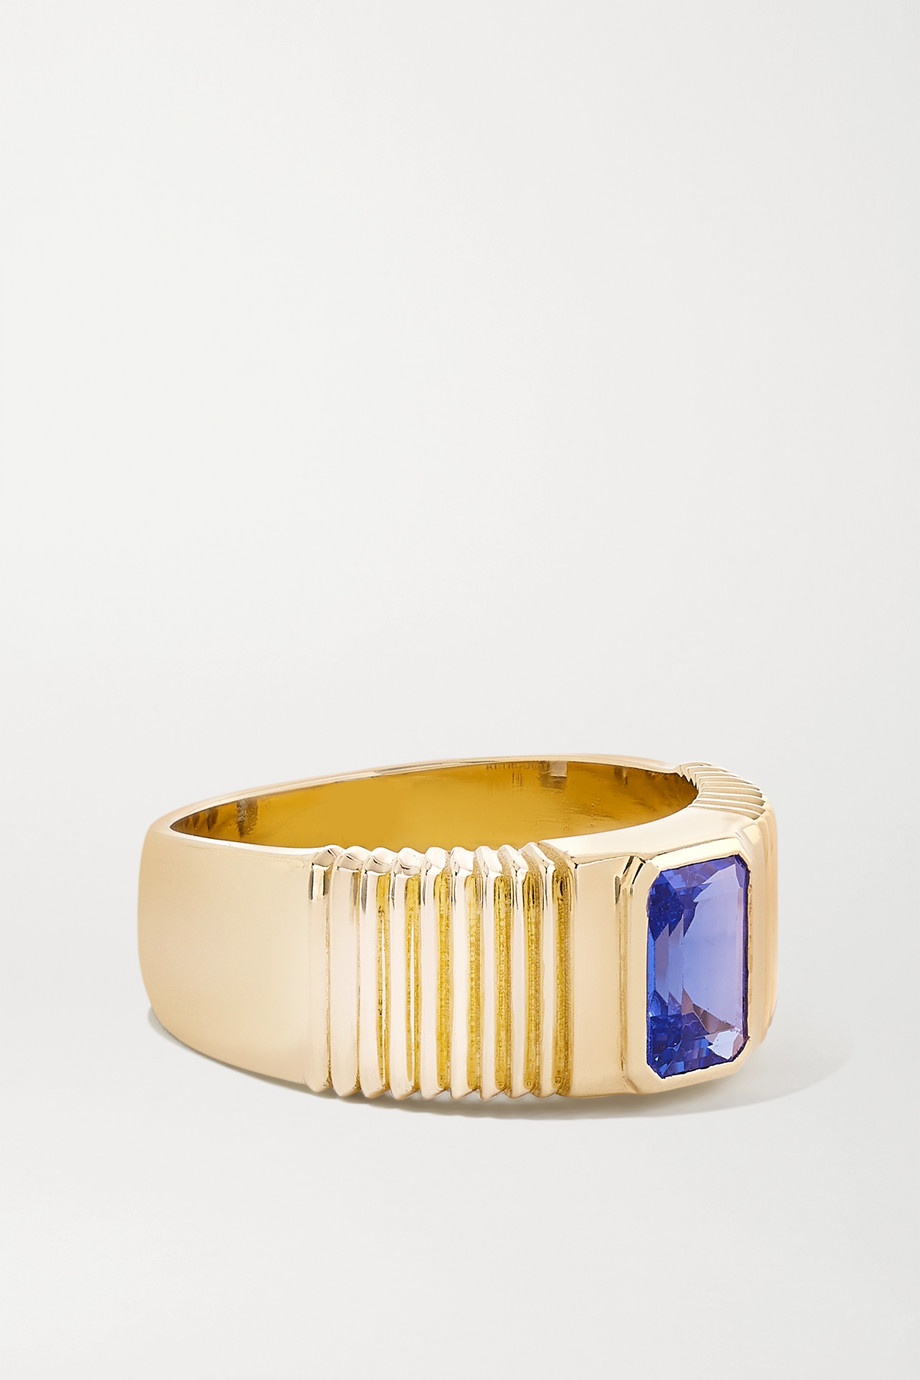 Retrouvaí Pleated Solitaire 14-karat gold tanzanite ring